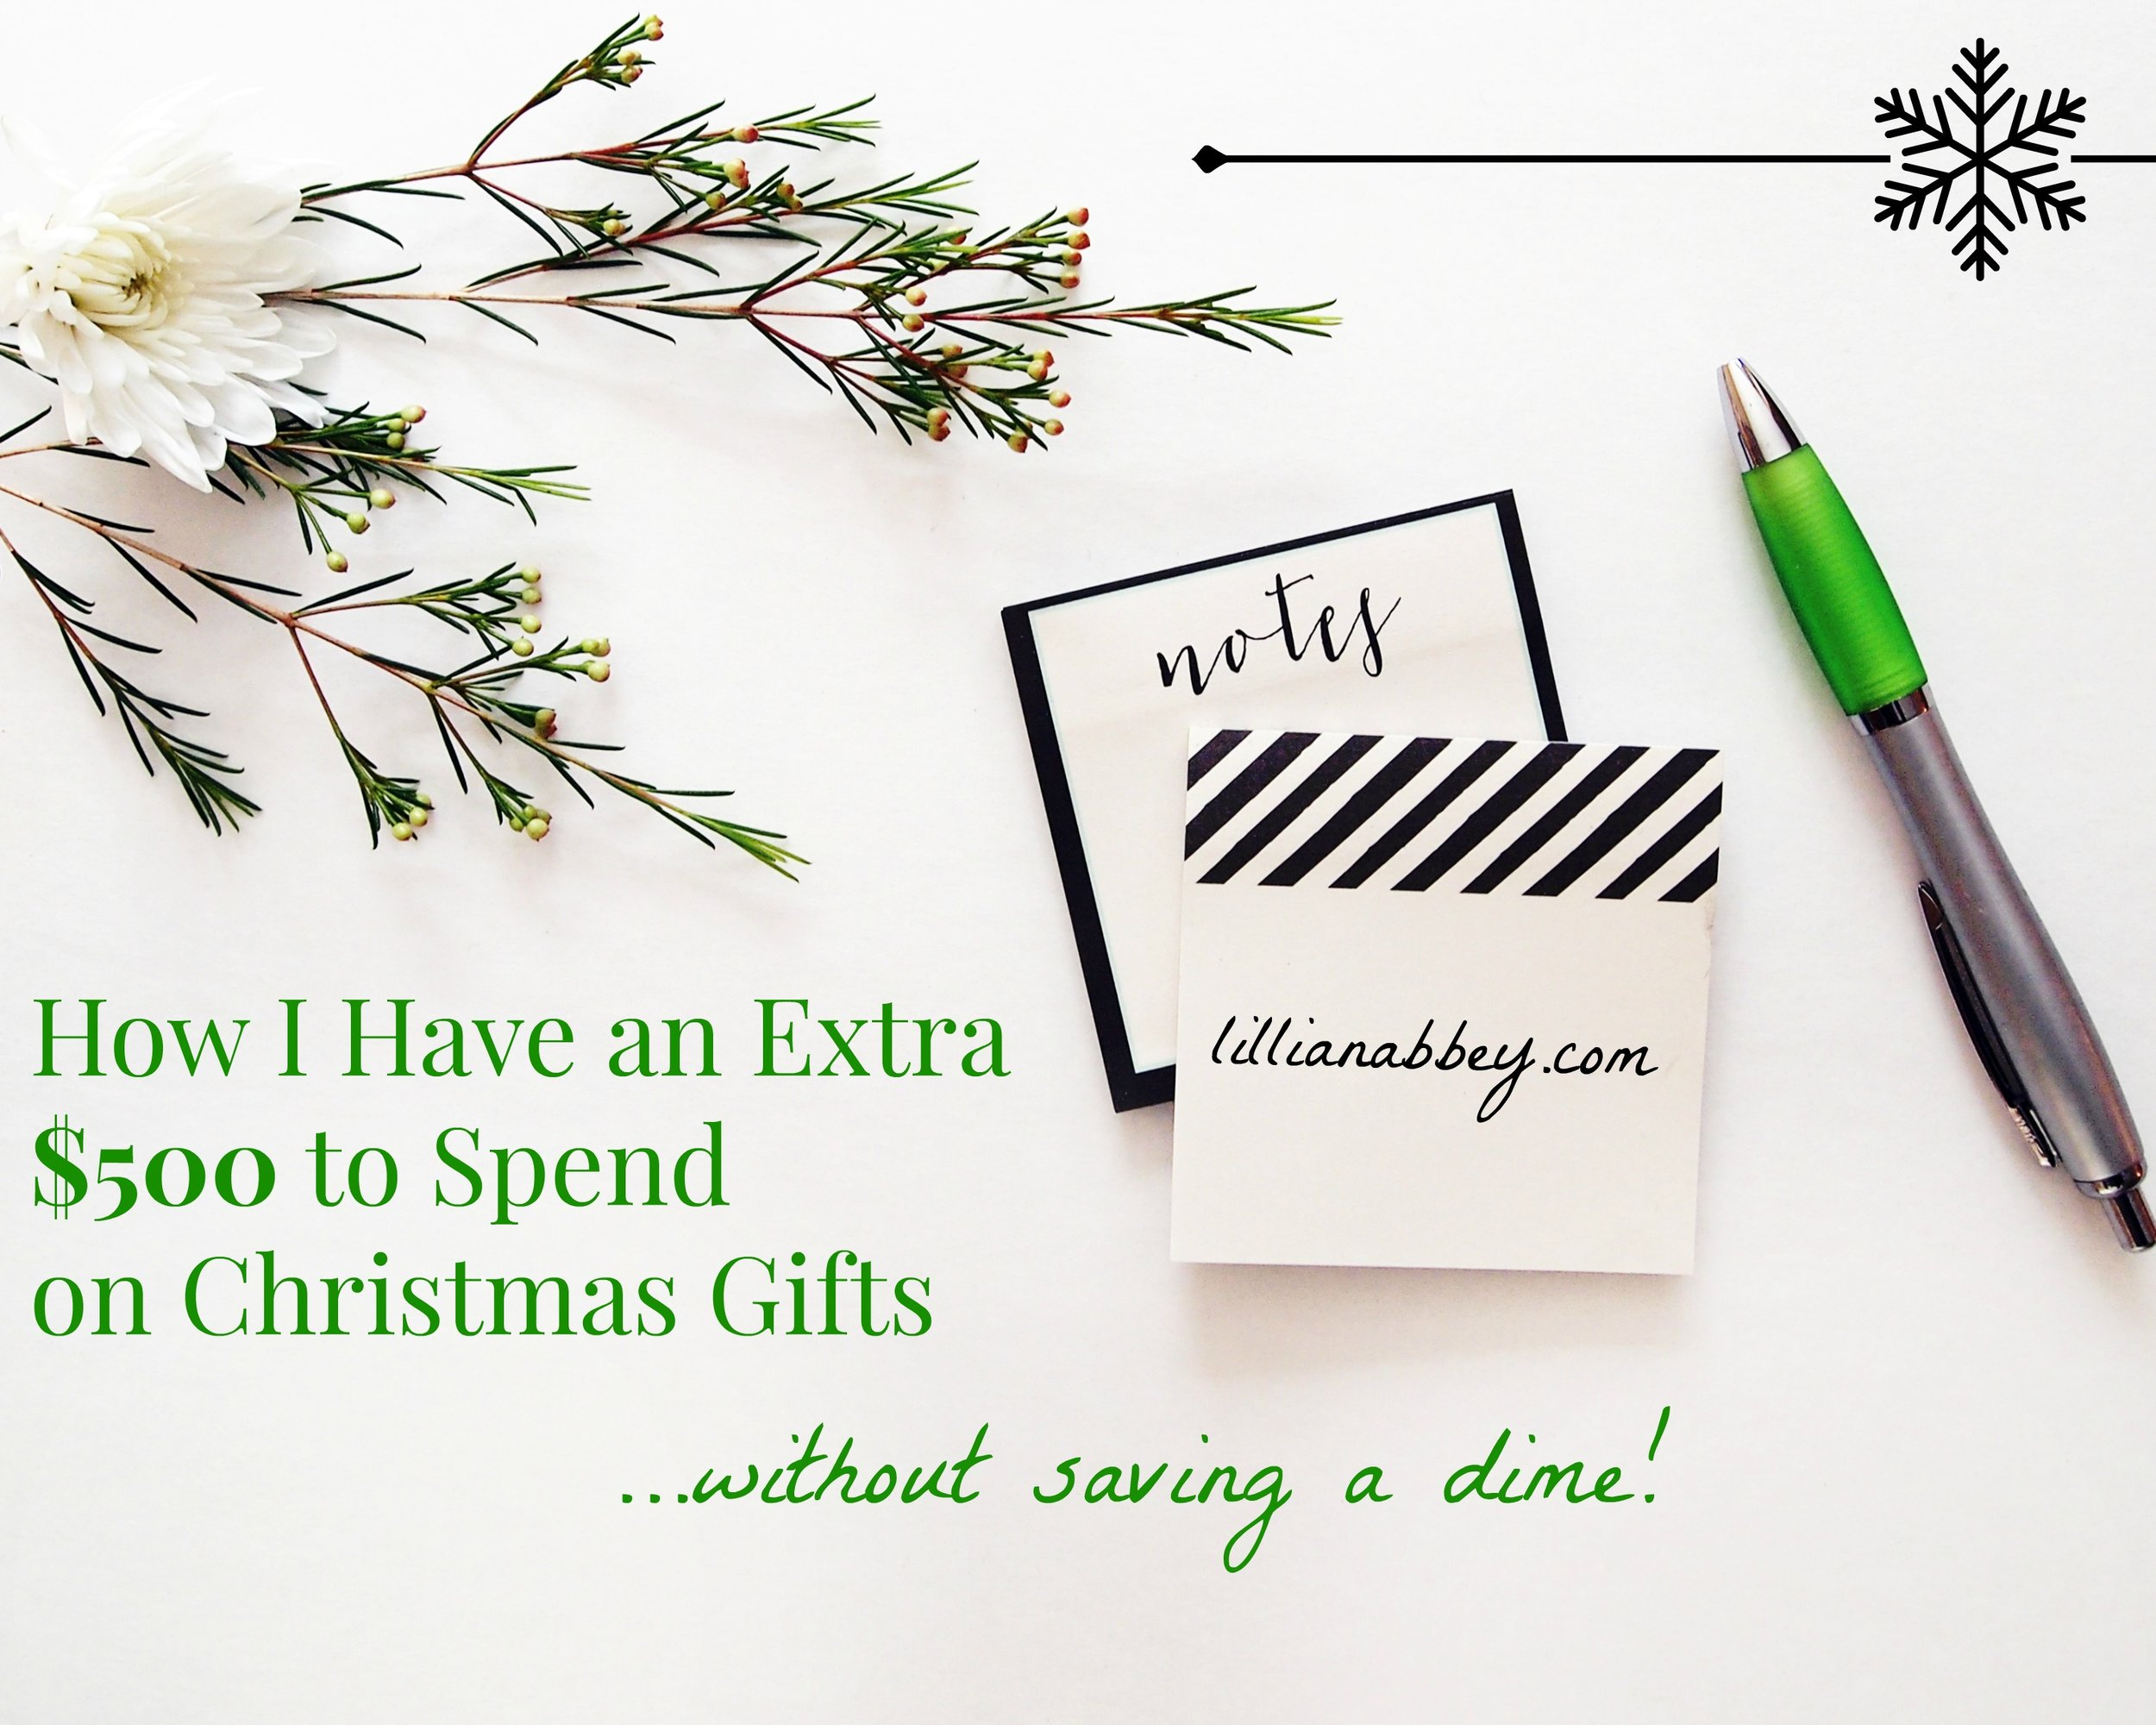 How to Get Extra Money for Christmas without Saving!